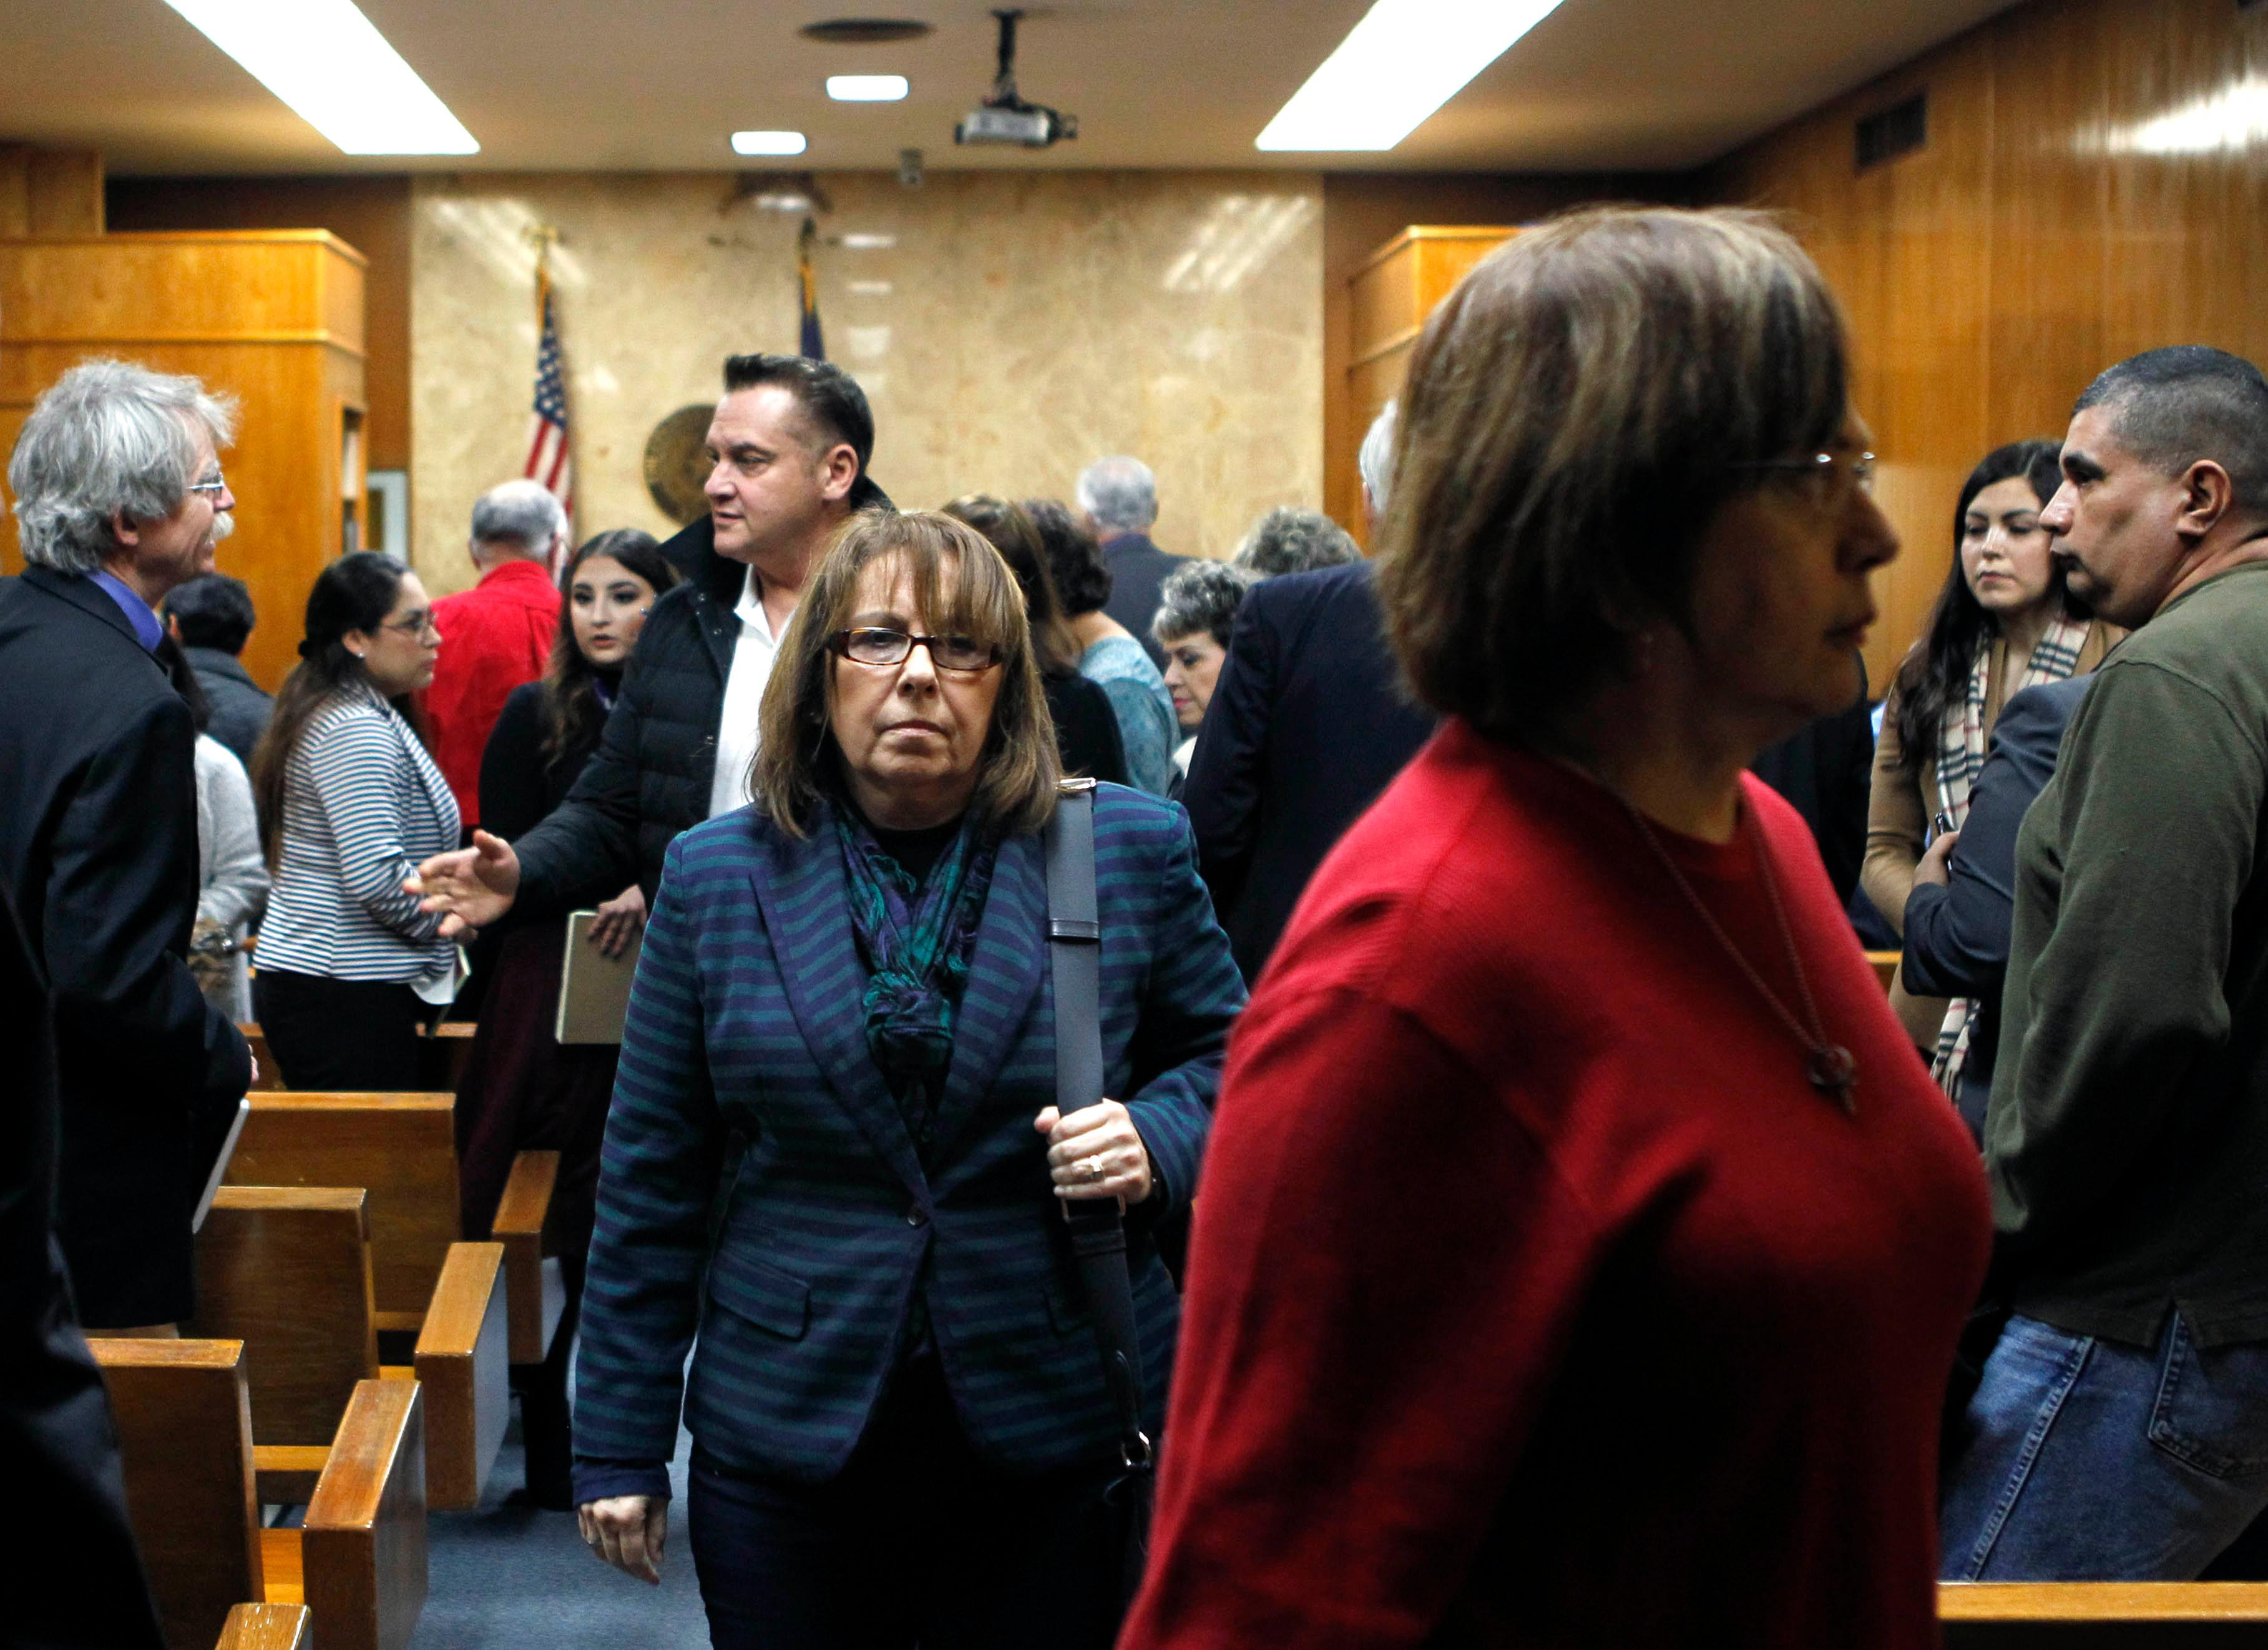 Lynda de la Vi?a, center, extended family member of Irene Garza, walks out of the 92nd state District Court during a break in Feit's trial for the 1960 murder of Garza Wednesday, December 6, 2017, at the Hidalgo County Courthouse in Edinburg. (Nathan Lambrecht/The Monitor/Pool)